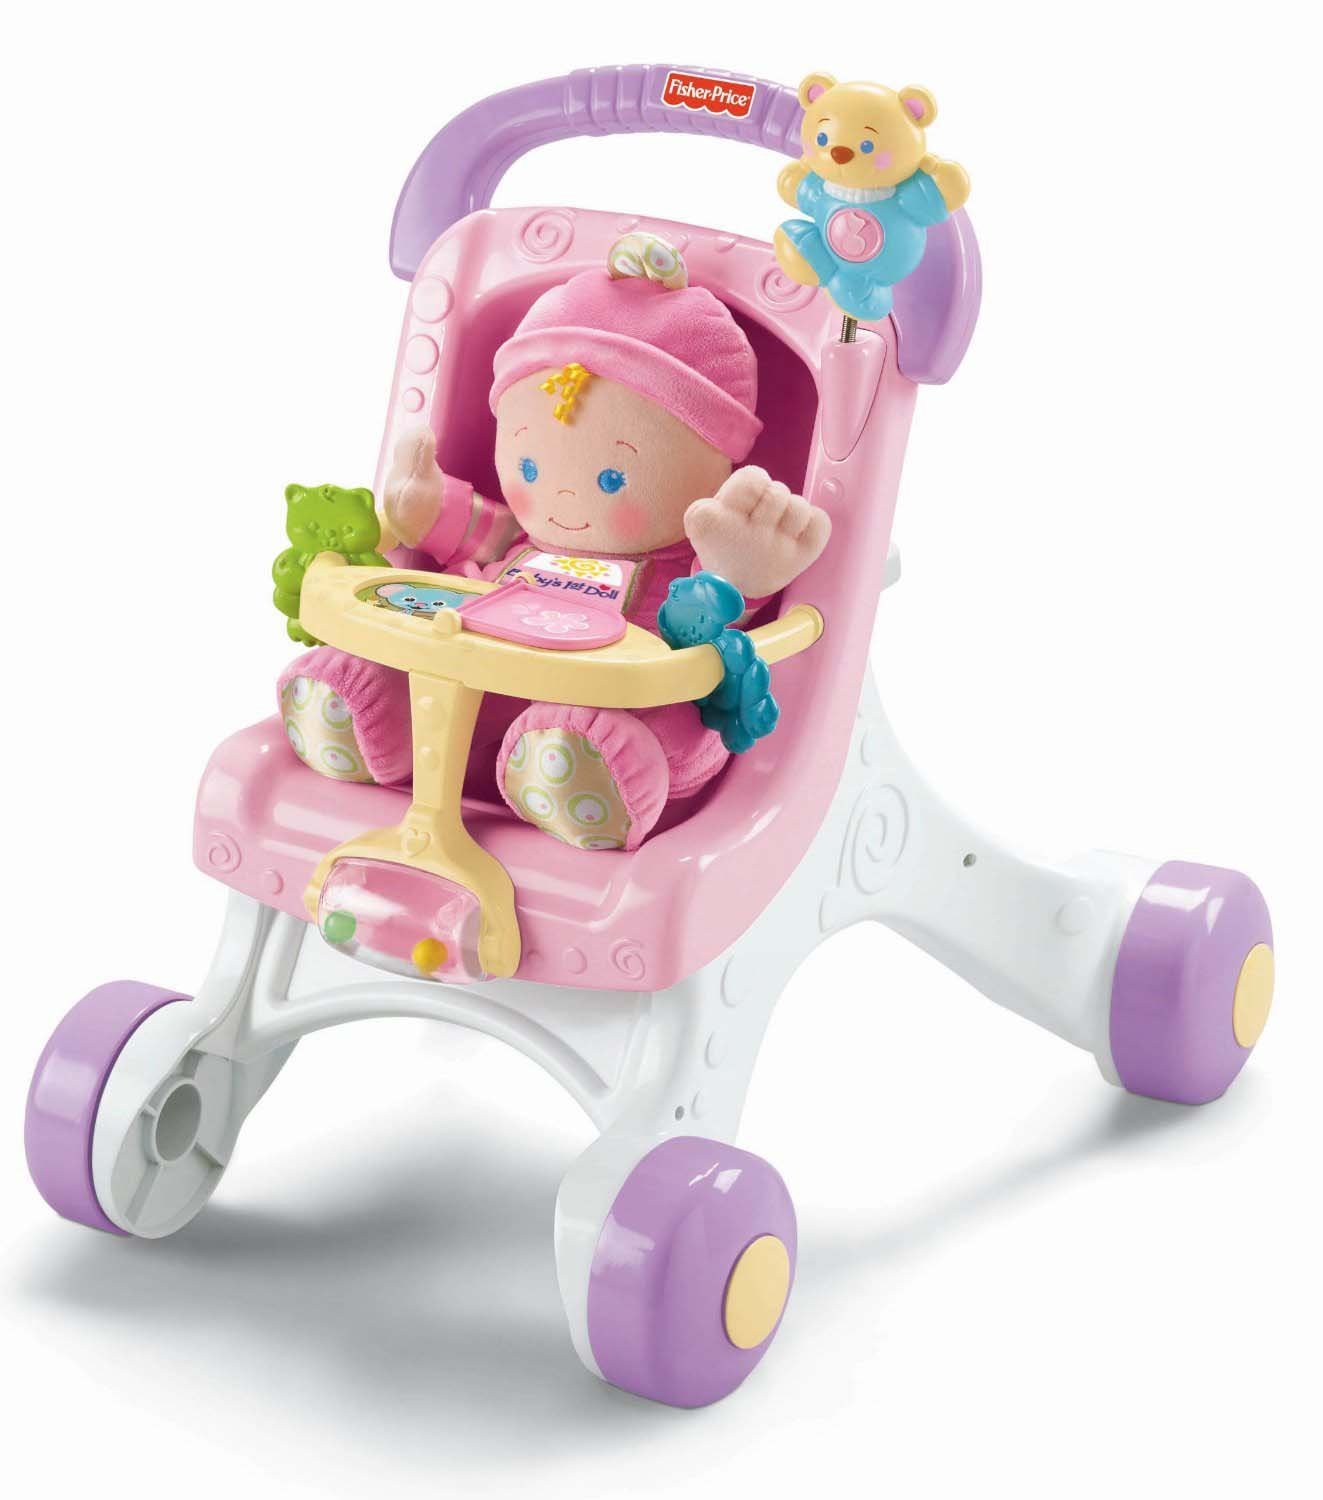 Best Toys Gifts For 1 Year Old Girls : Toys for year old girl birthday christmas gifts